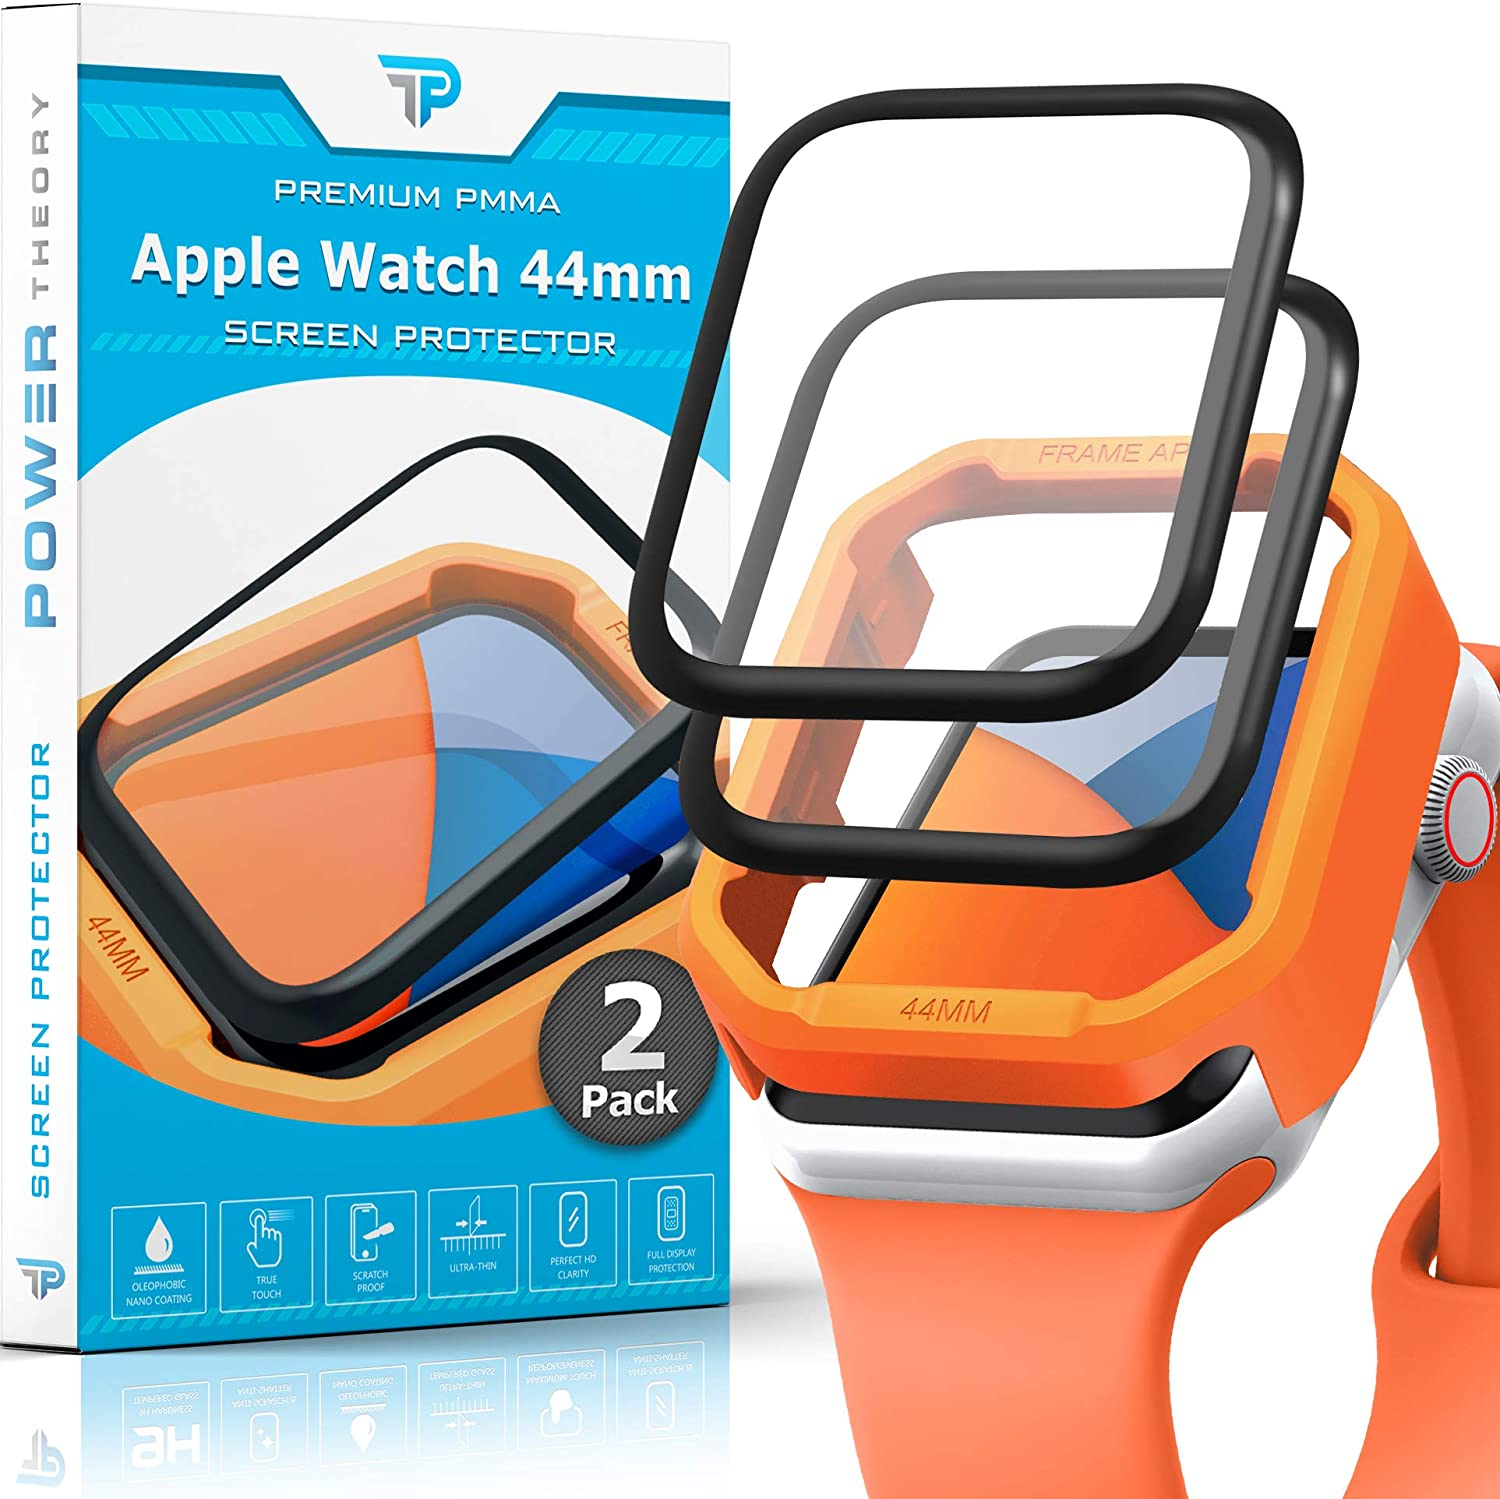 Power Theory Screen Protector for Apple Watch 44mm [2-Pack] with Easy Install Kit, Premium PMMA Protection [NOT GLASS]